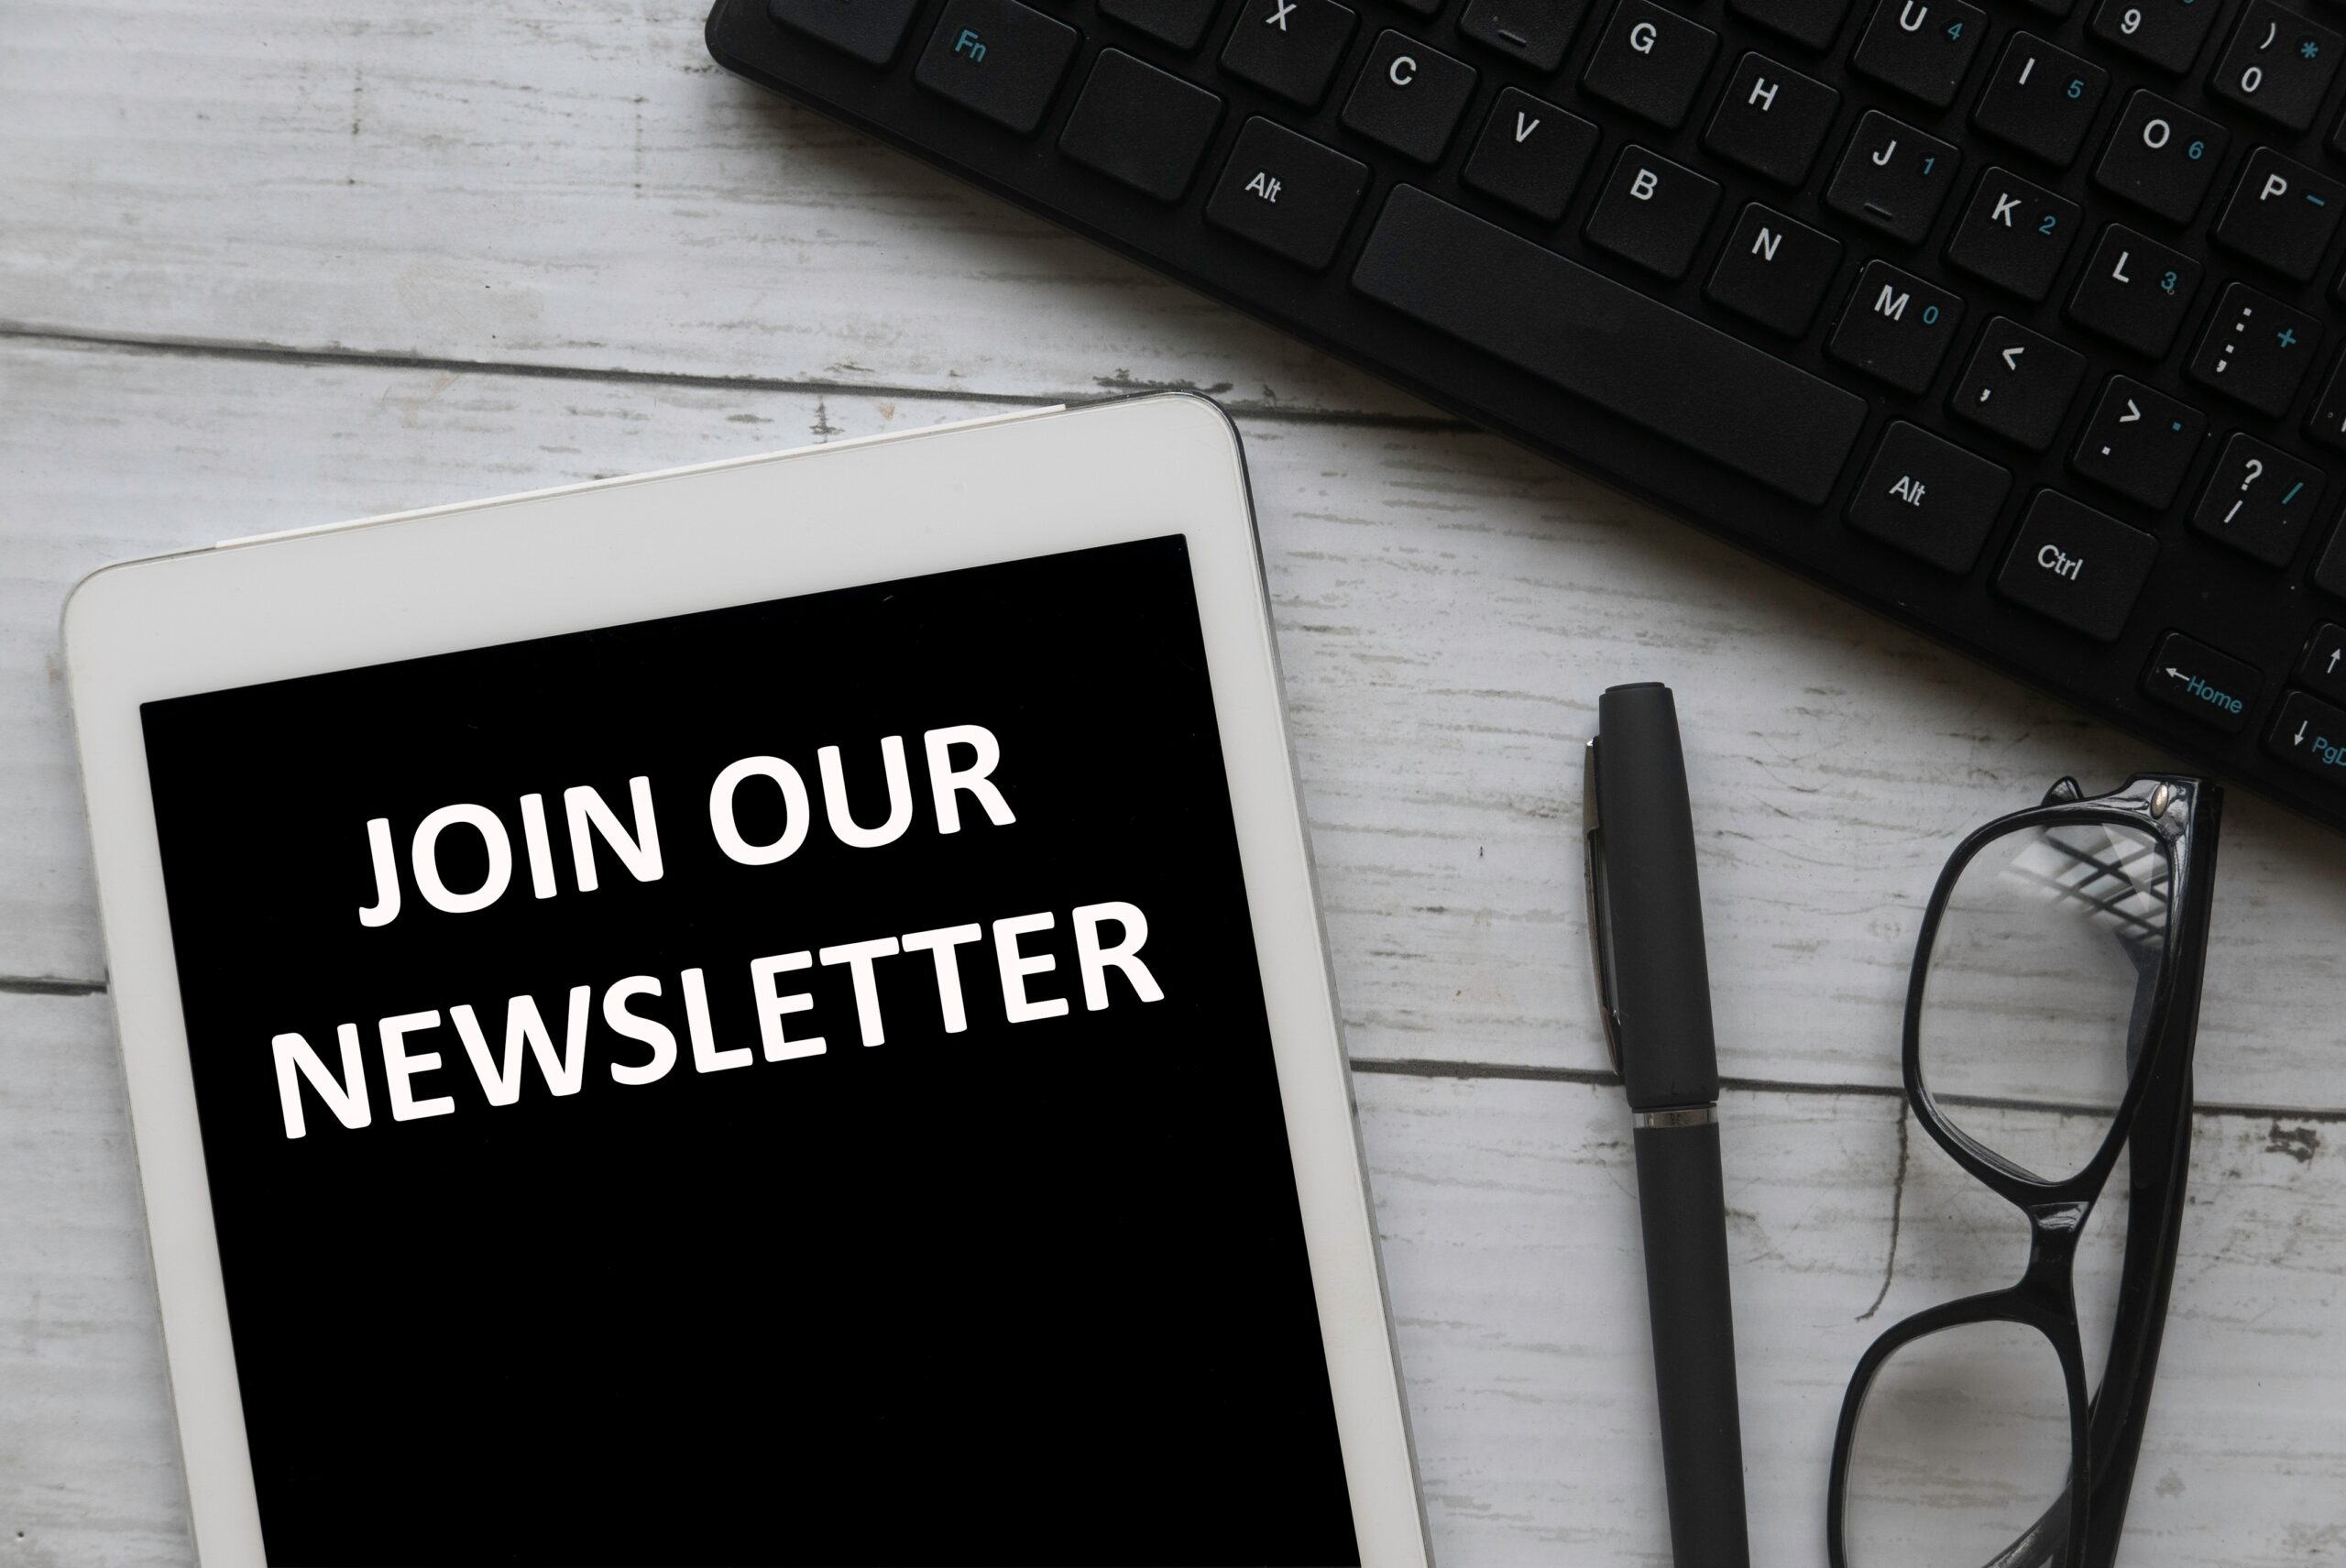 join our newsletter concept APKQKEB scaled